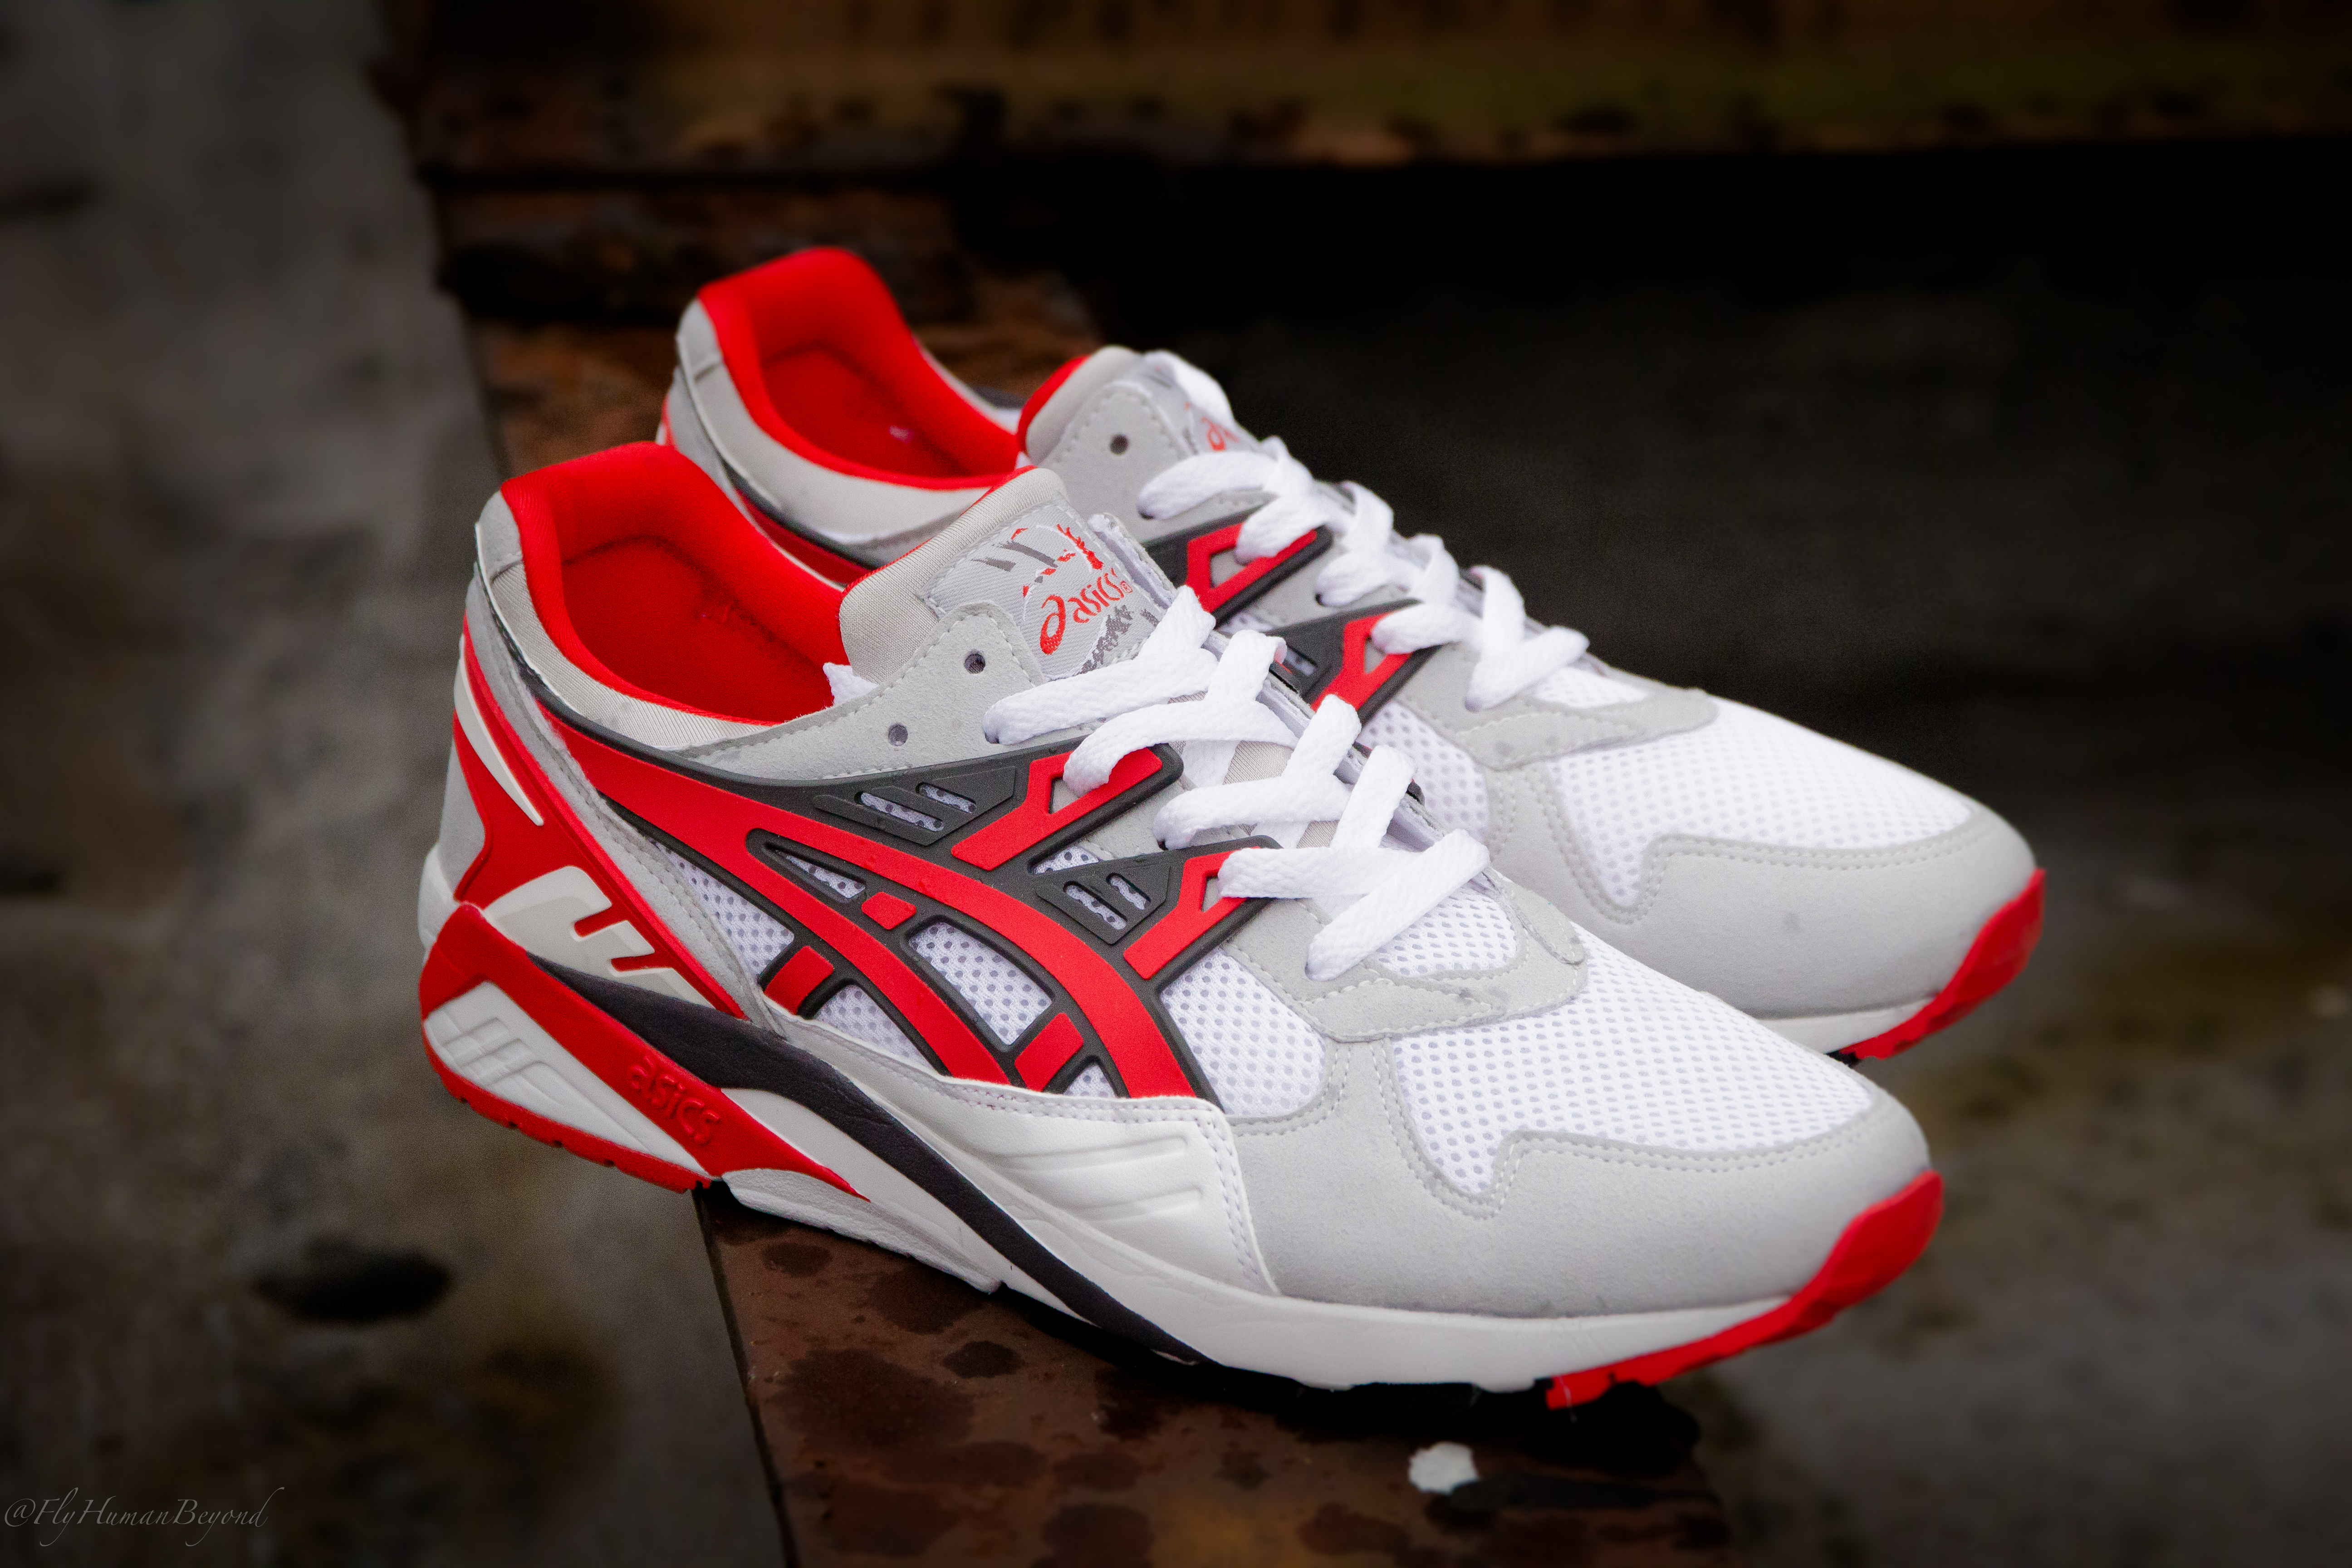 asics gel kayano trainer white fairy red grey black packer shoes packer shoes. Black Bedroom Furniture Sets. Home Design Ideas